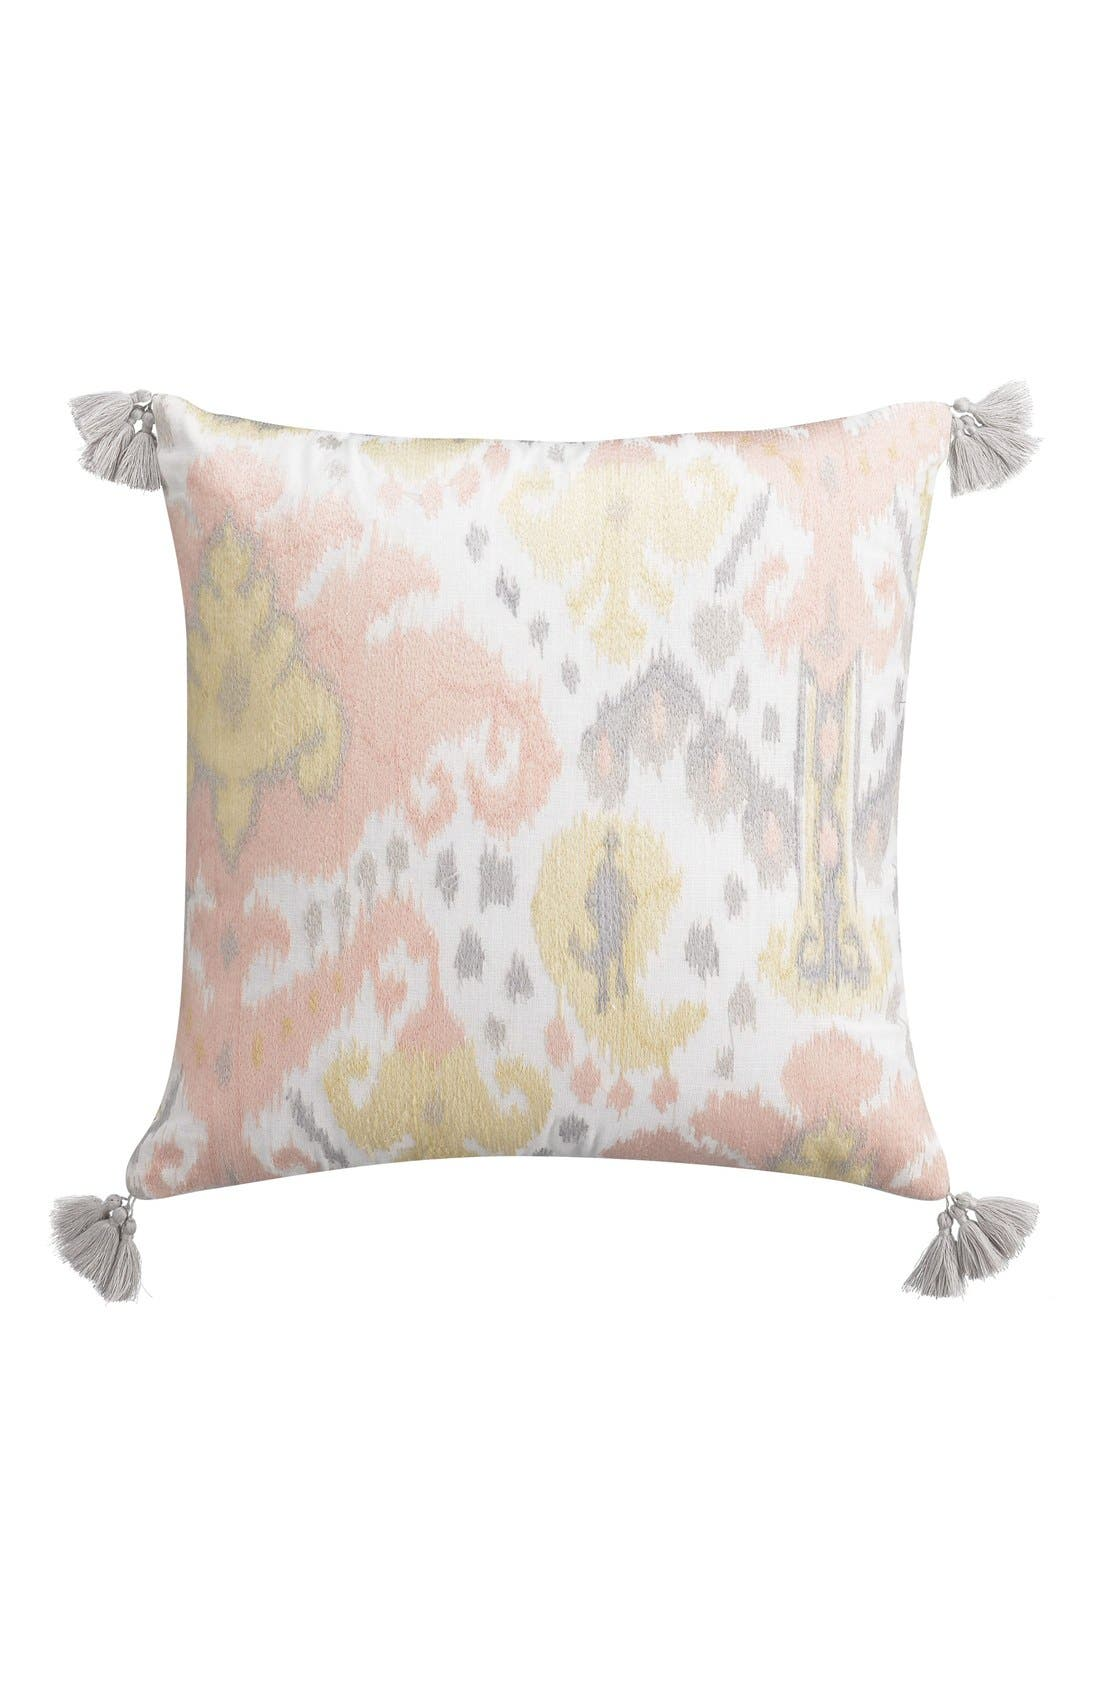 CUPCAKES AND CASHMERE Kilim Embroidered Accent Pillow